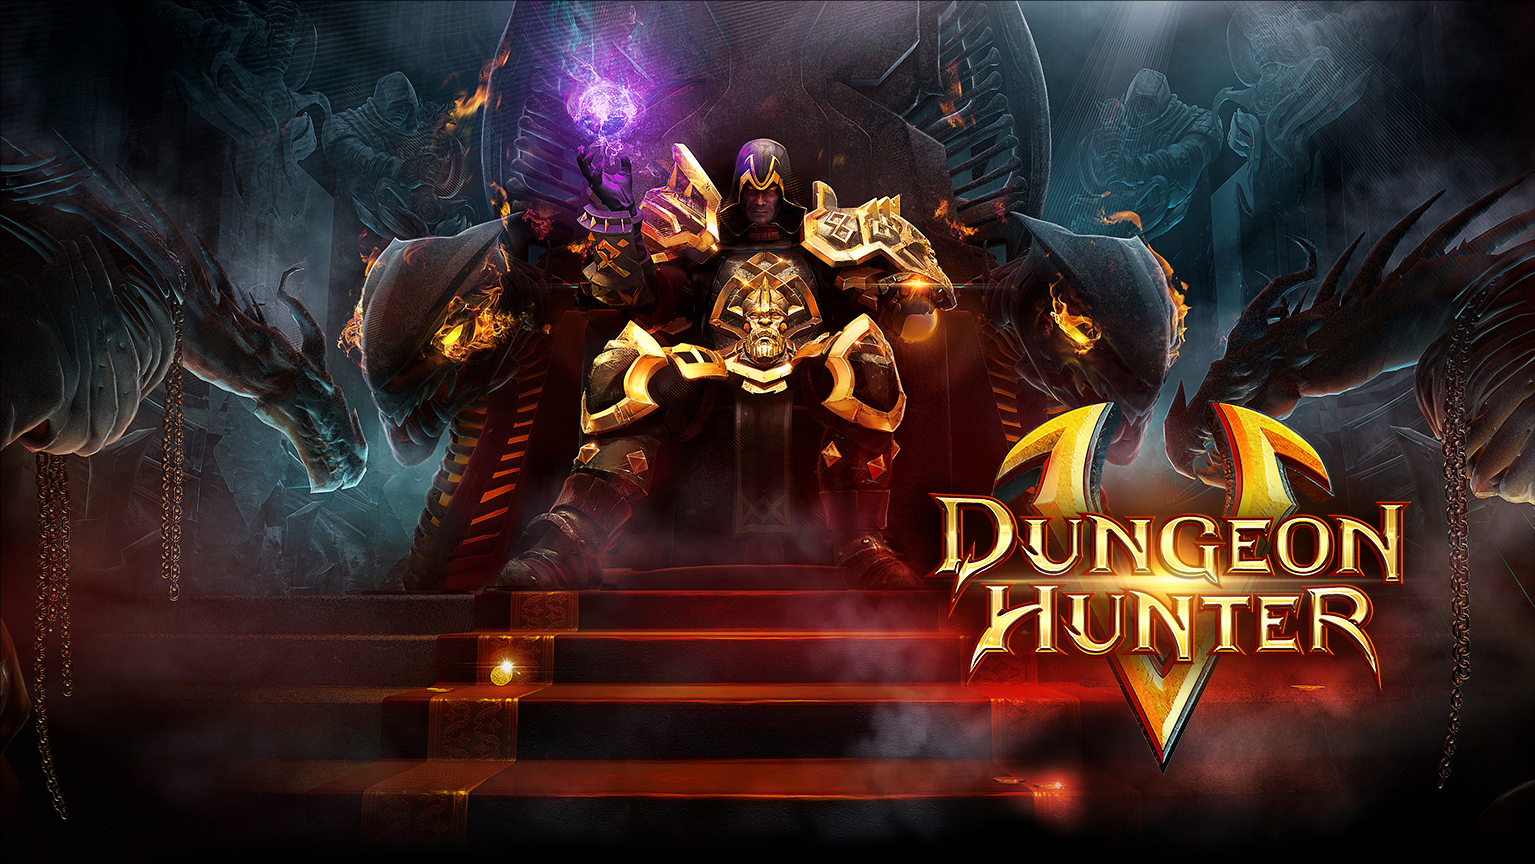 Dungeon Hunter 5, Dungeon Hunter 5 Android, Dungeon Hunter 5 обзор